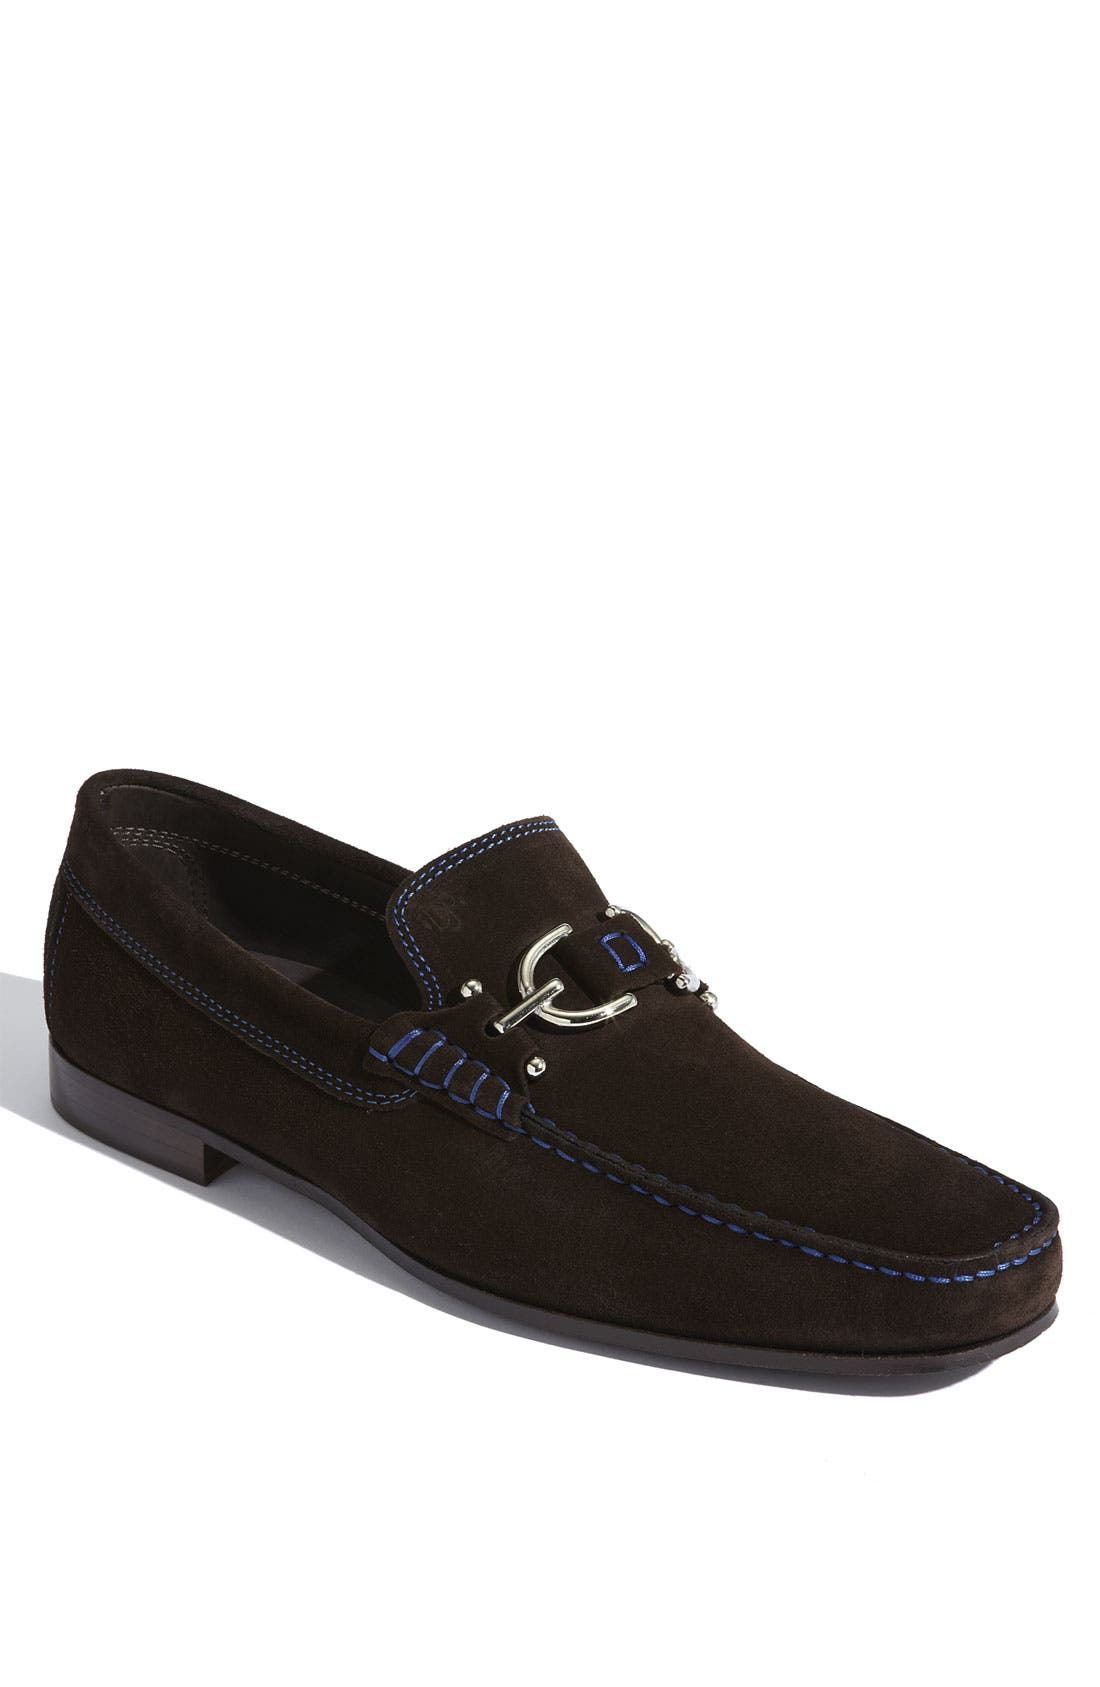 Alternate Image 1 Selected - Donald J Pliner 'Dacio II' Loafer